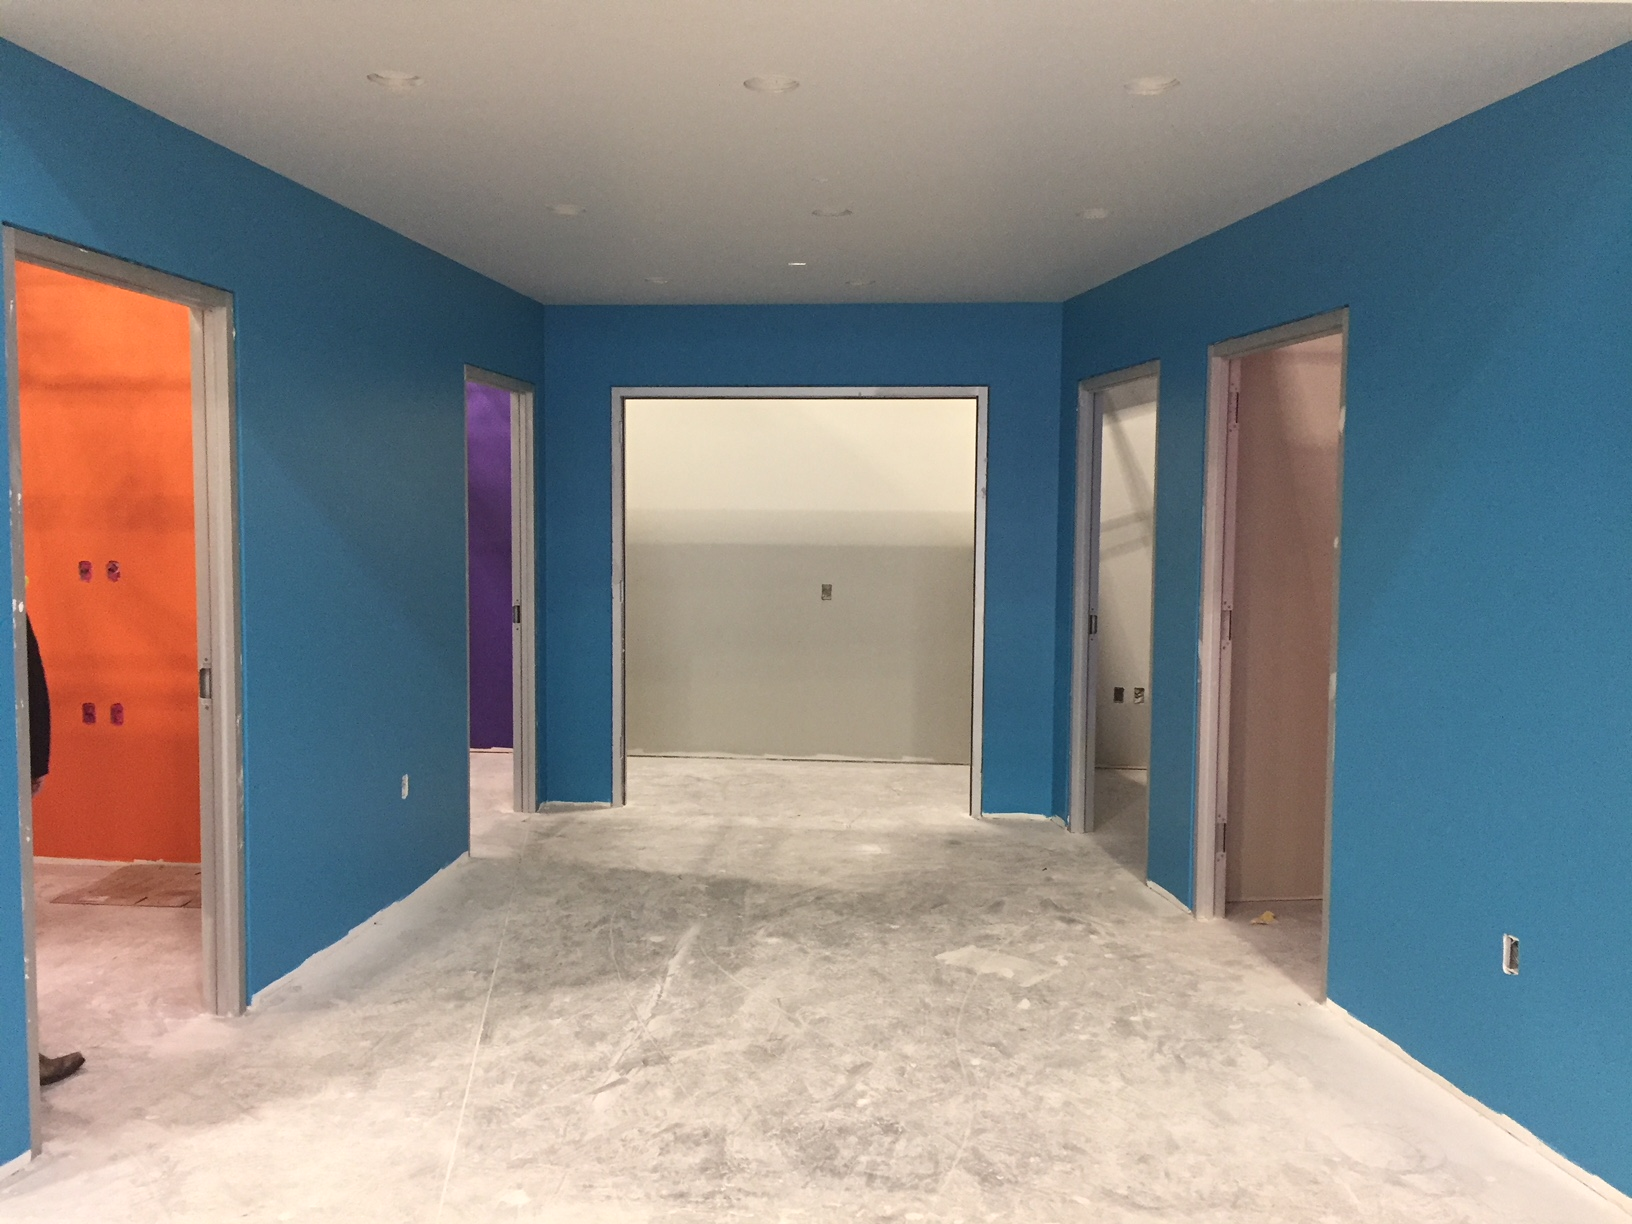 colored rooms in new office